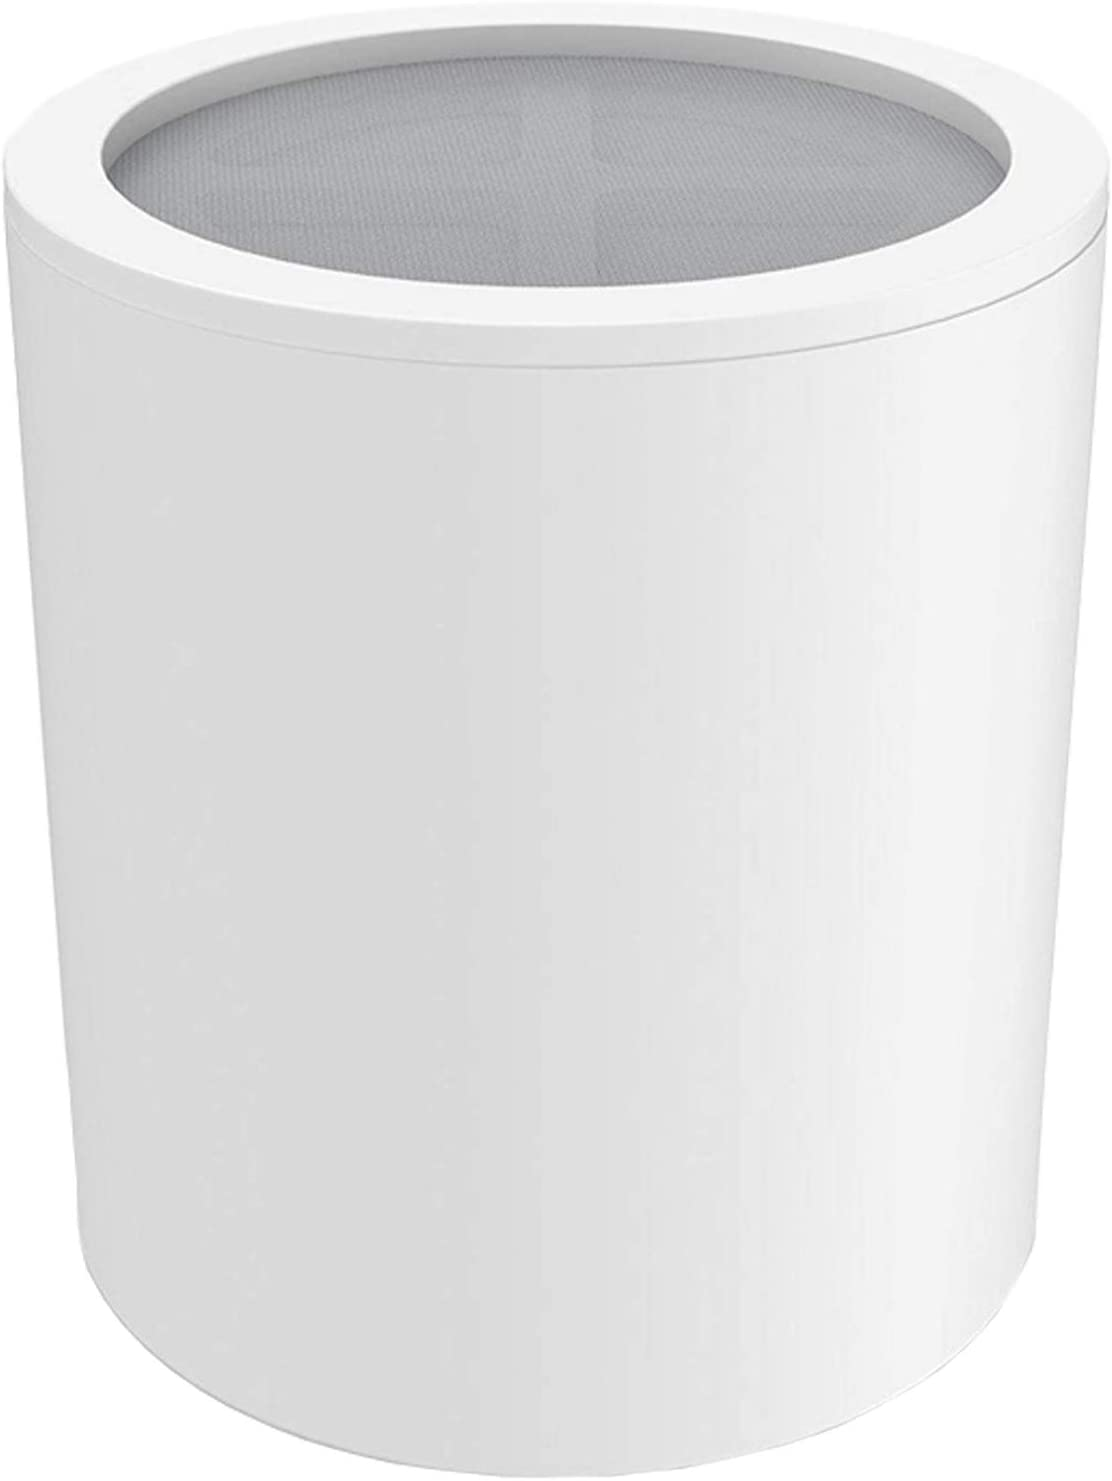 Aqua Earth 15 Stage Replacement Premium Filter Cartridge (No Housing), Compatible with Any Shower Filter of Similar Design Universal High Output